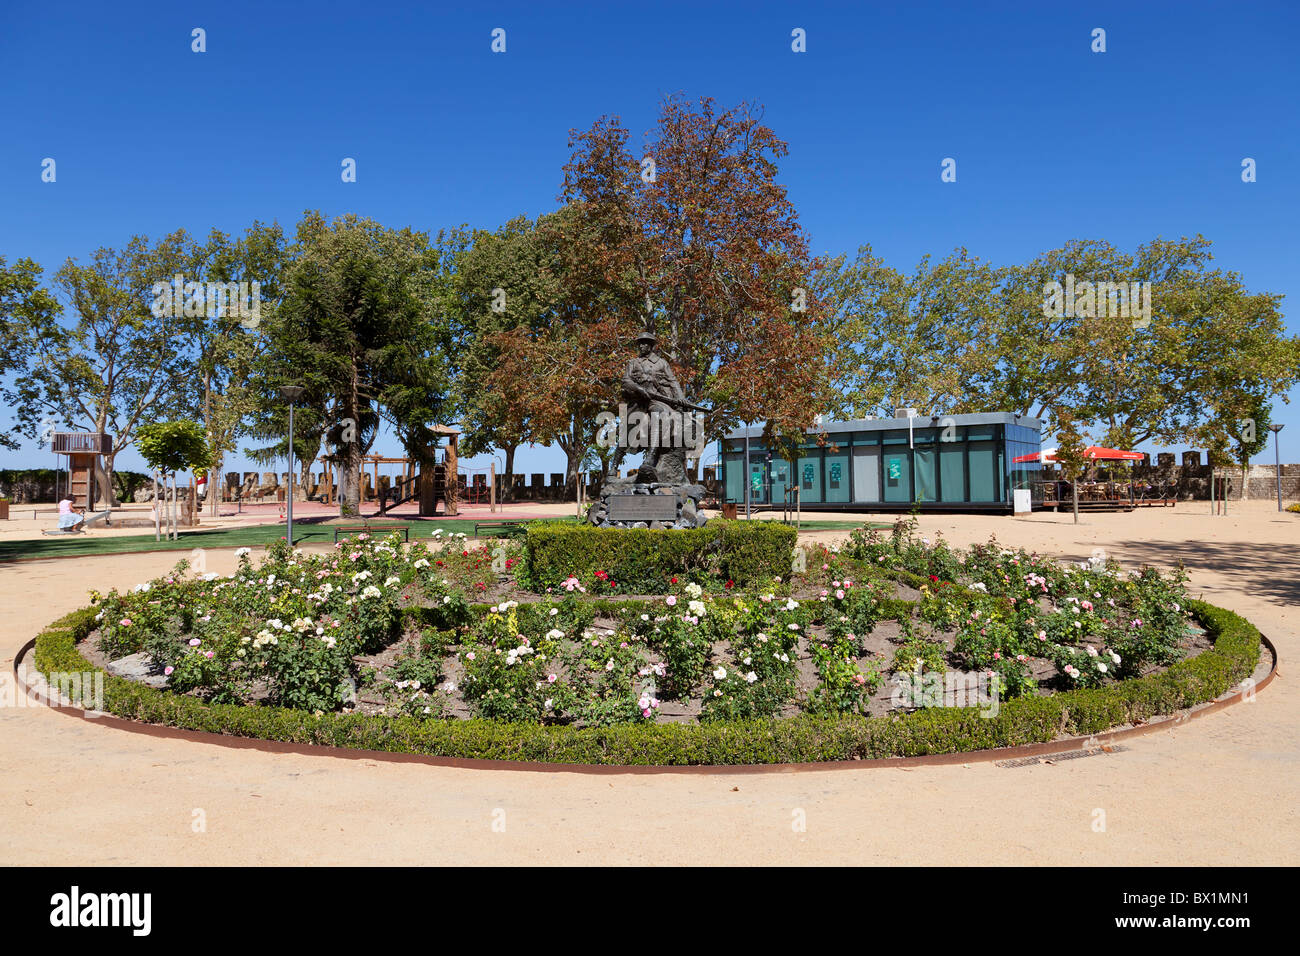 Memorial to the victims of the First World War (the Great War) in Portas do Sol Garden. Santarém, Portugal. - Stock Image